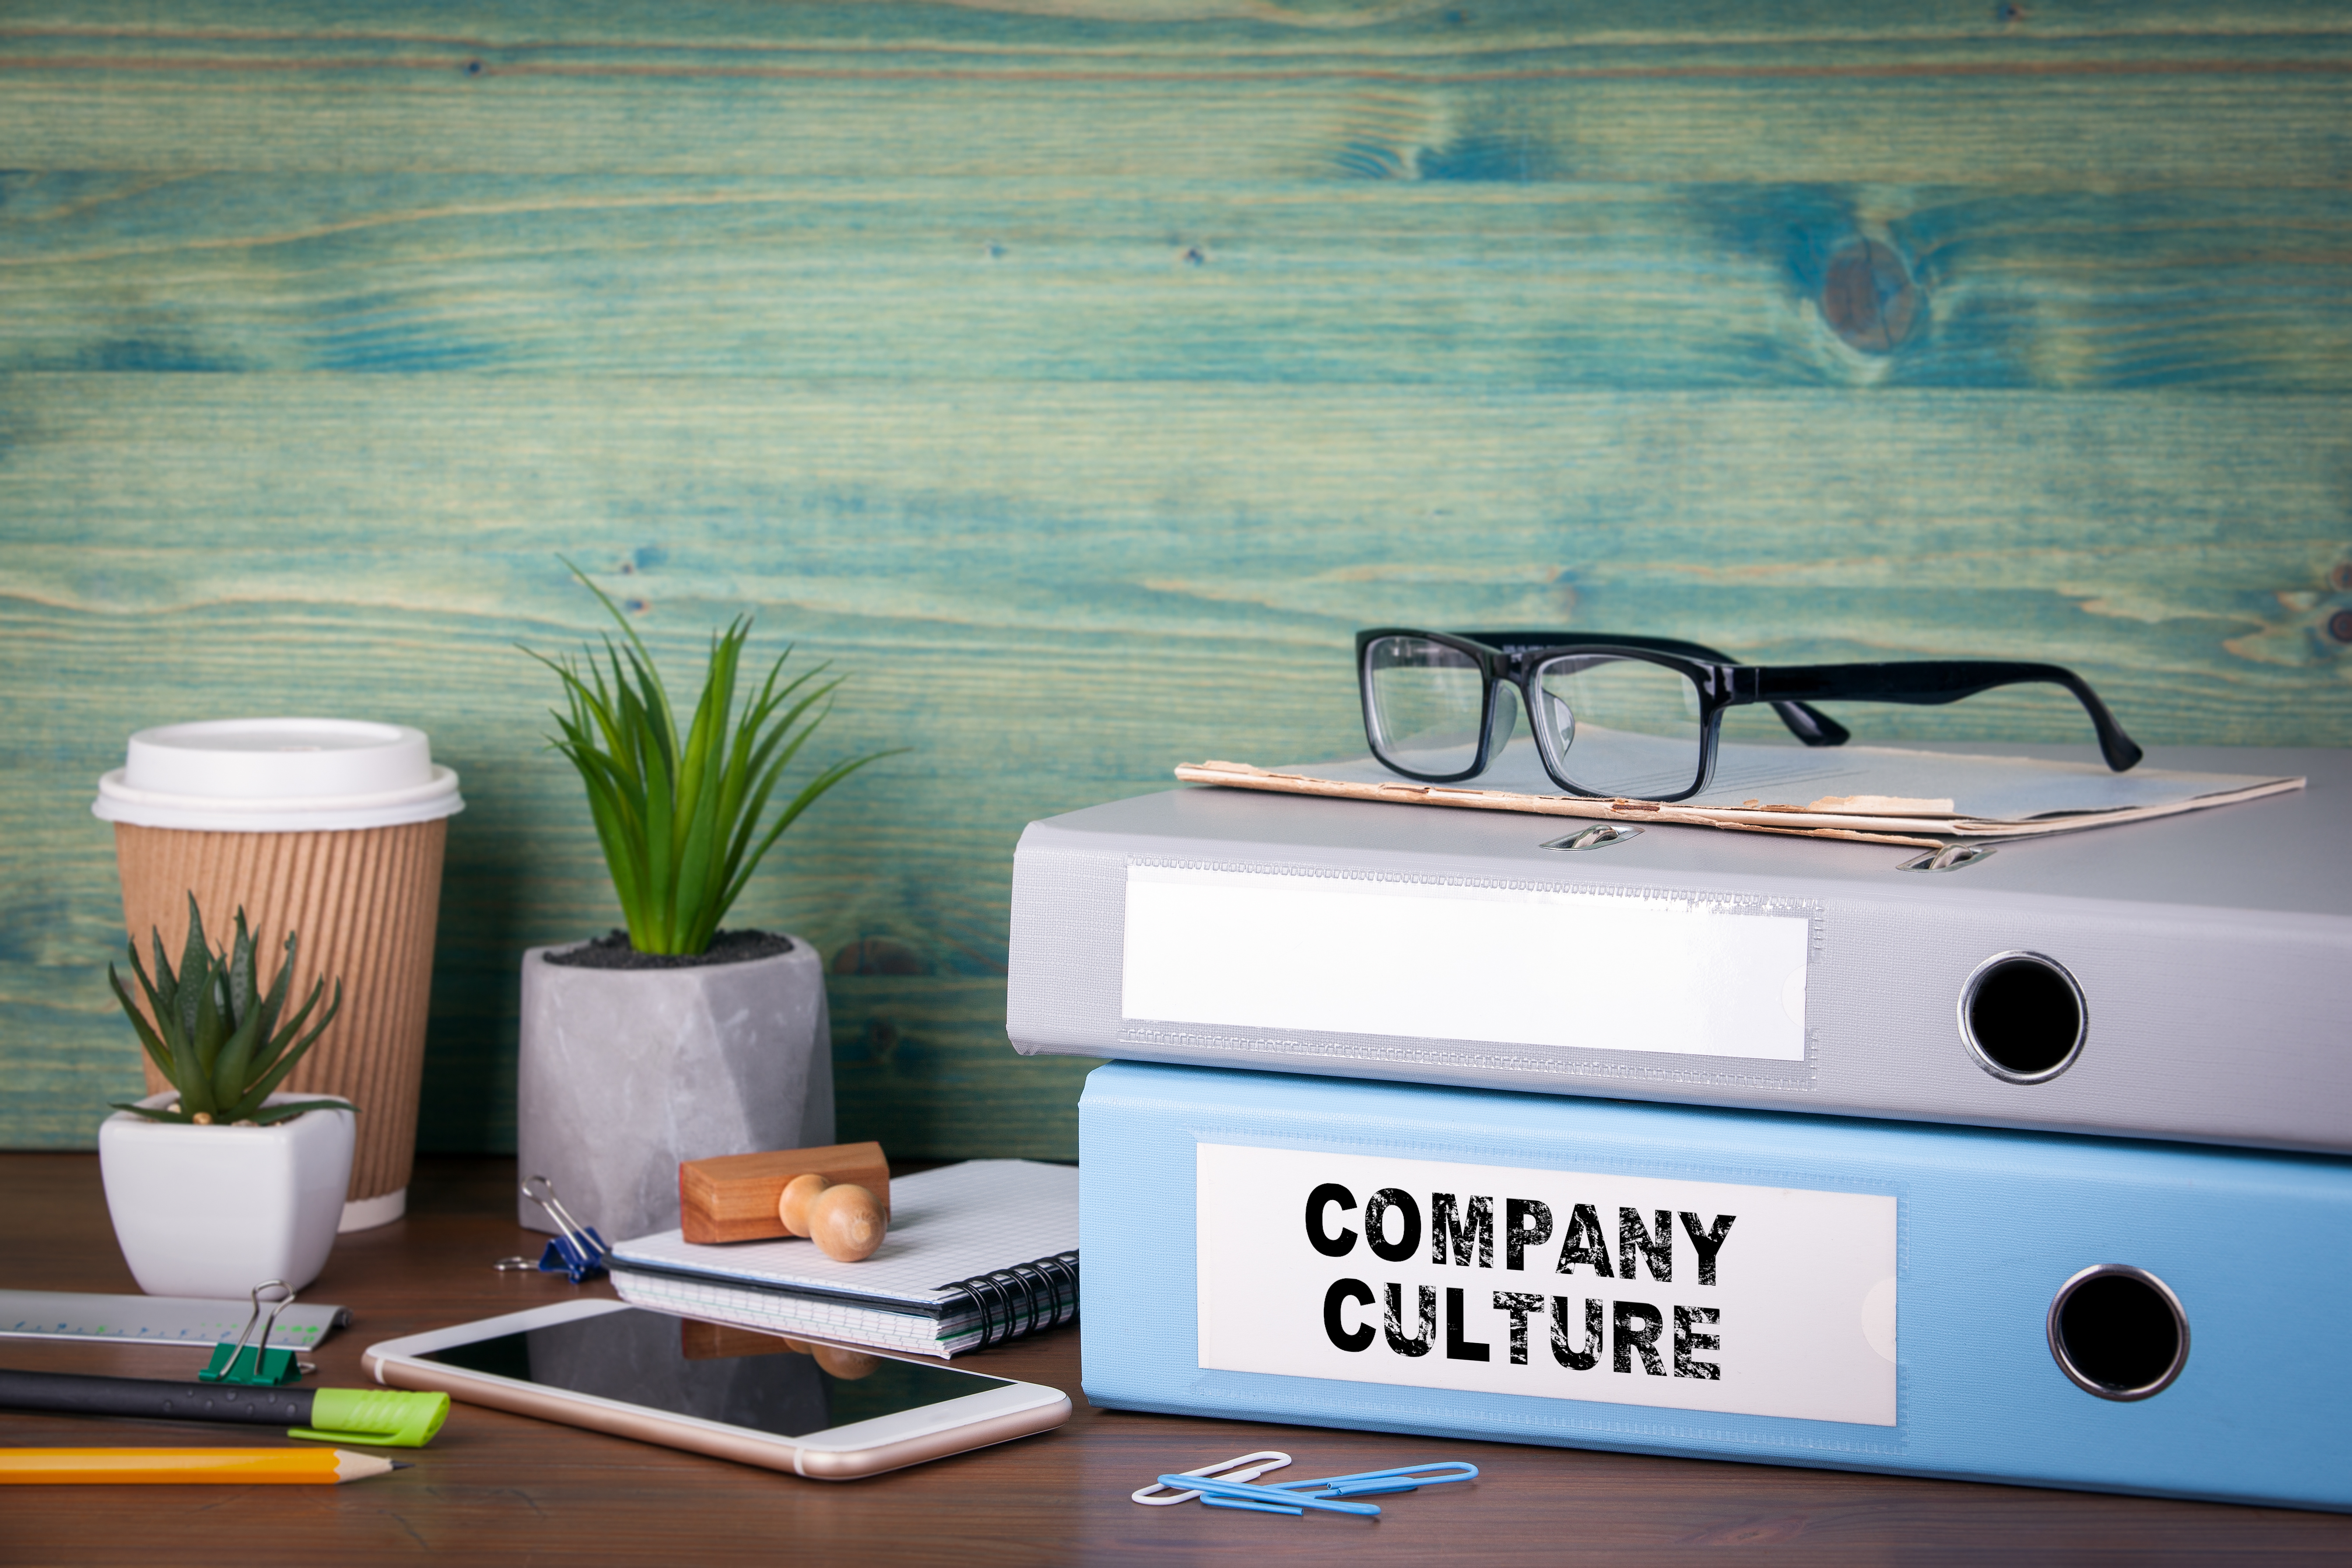 How Can You Change Your Company Culture?